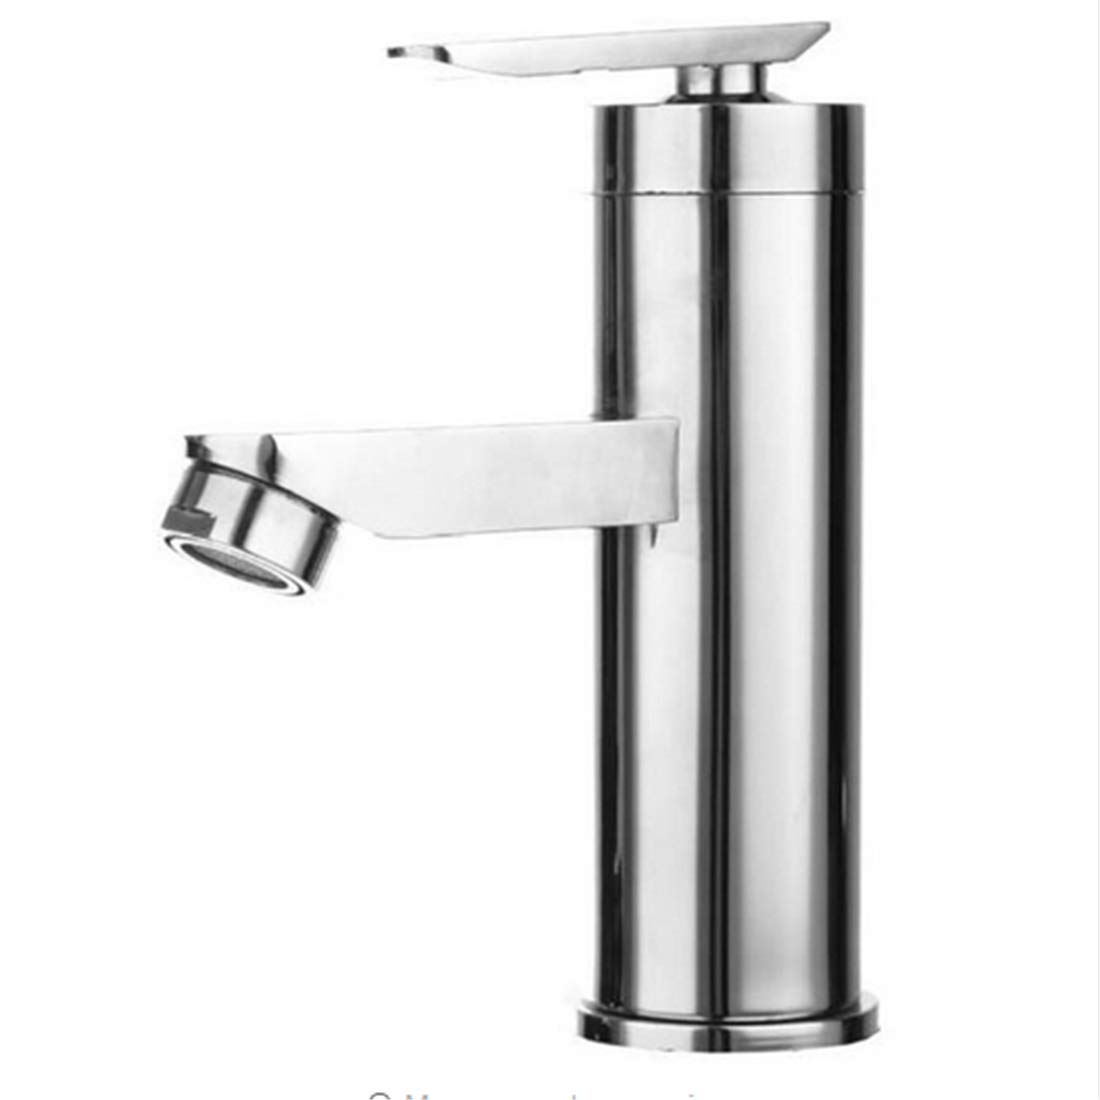 360 Degree redating Double Water Function Chrome Waterfall Faucet Sink Fauce of Bathroom Bathroom